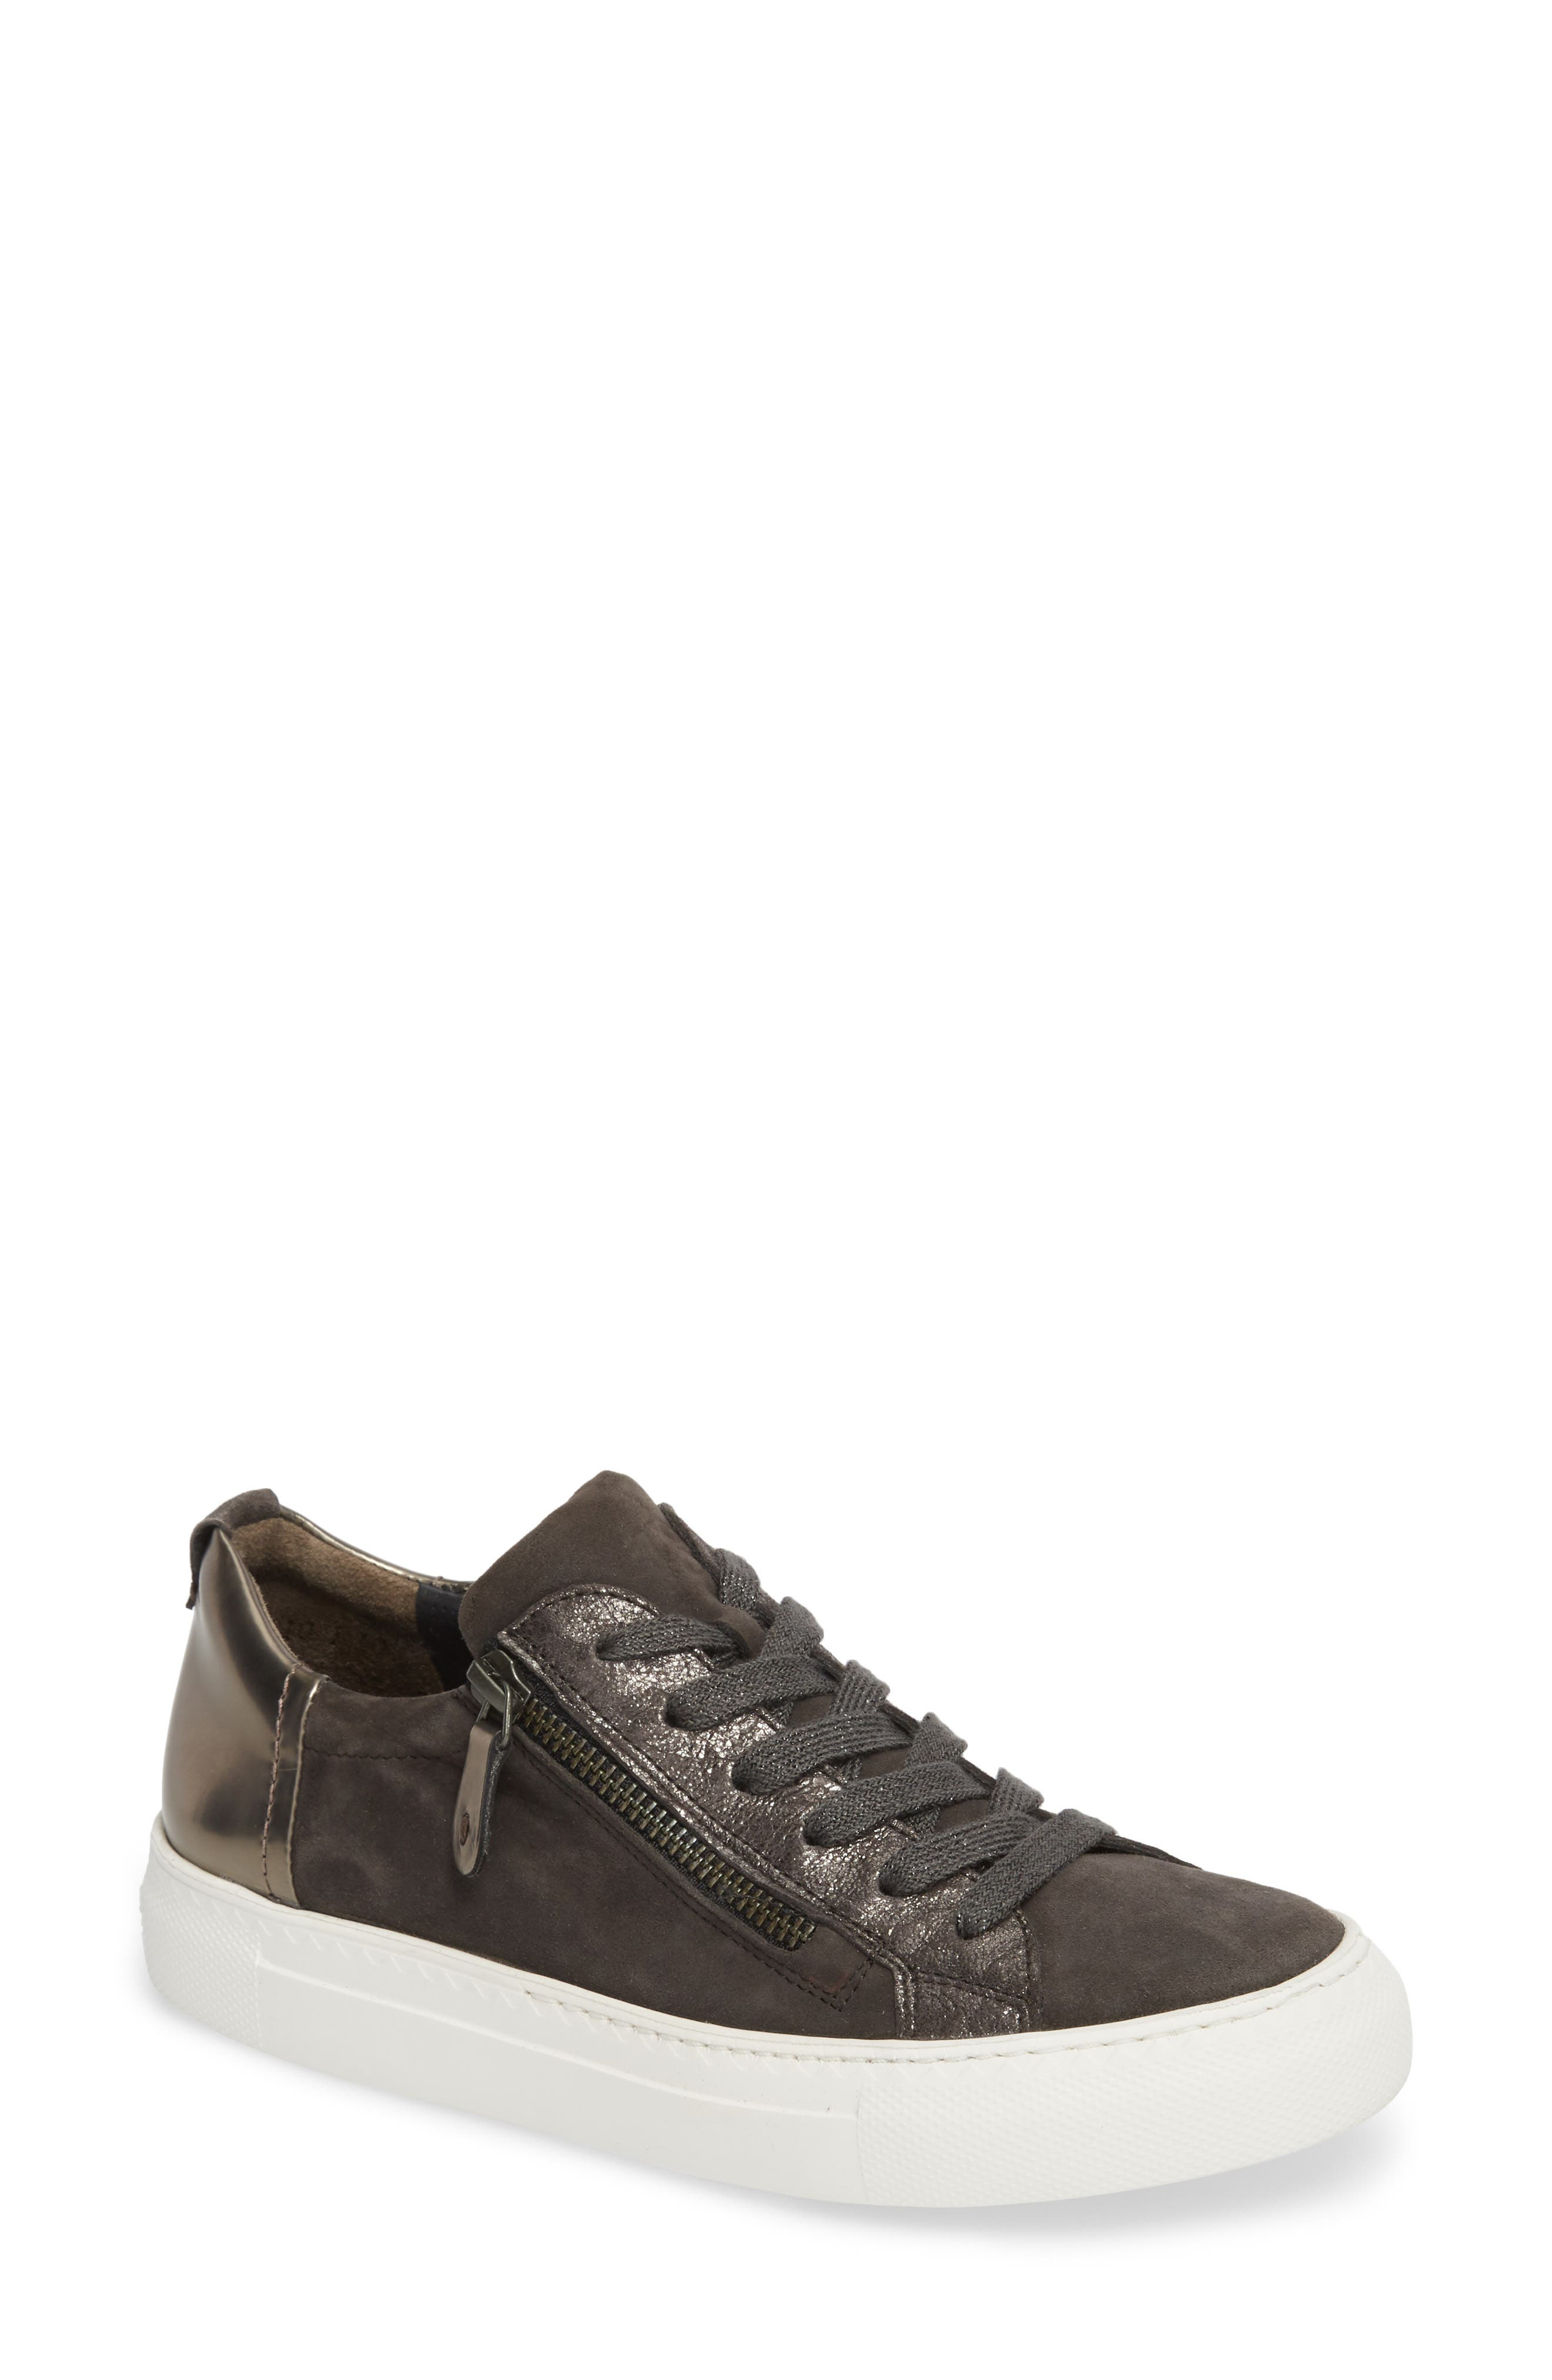 Toby Sneaker,                         Main,                         color, ANTHRAZITE PIOMBO COMBO